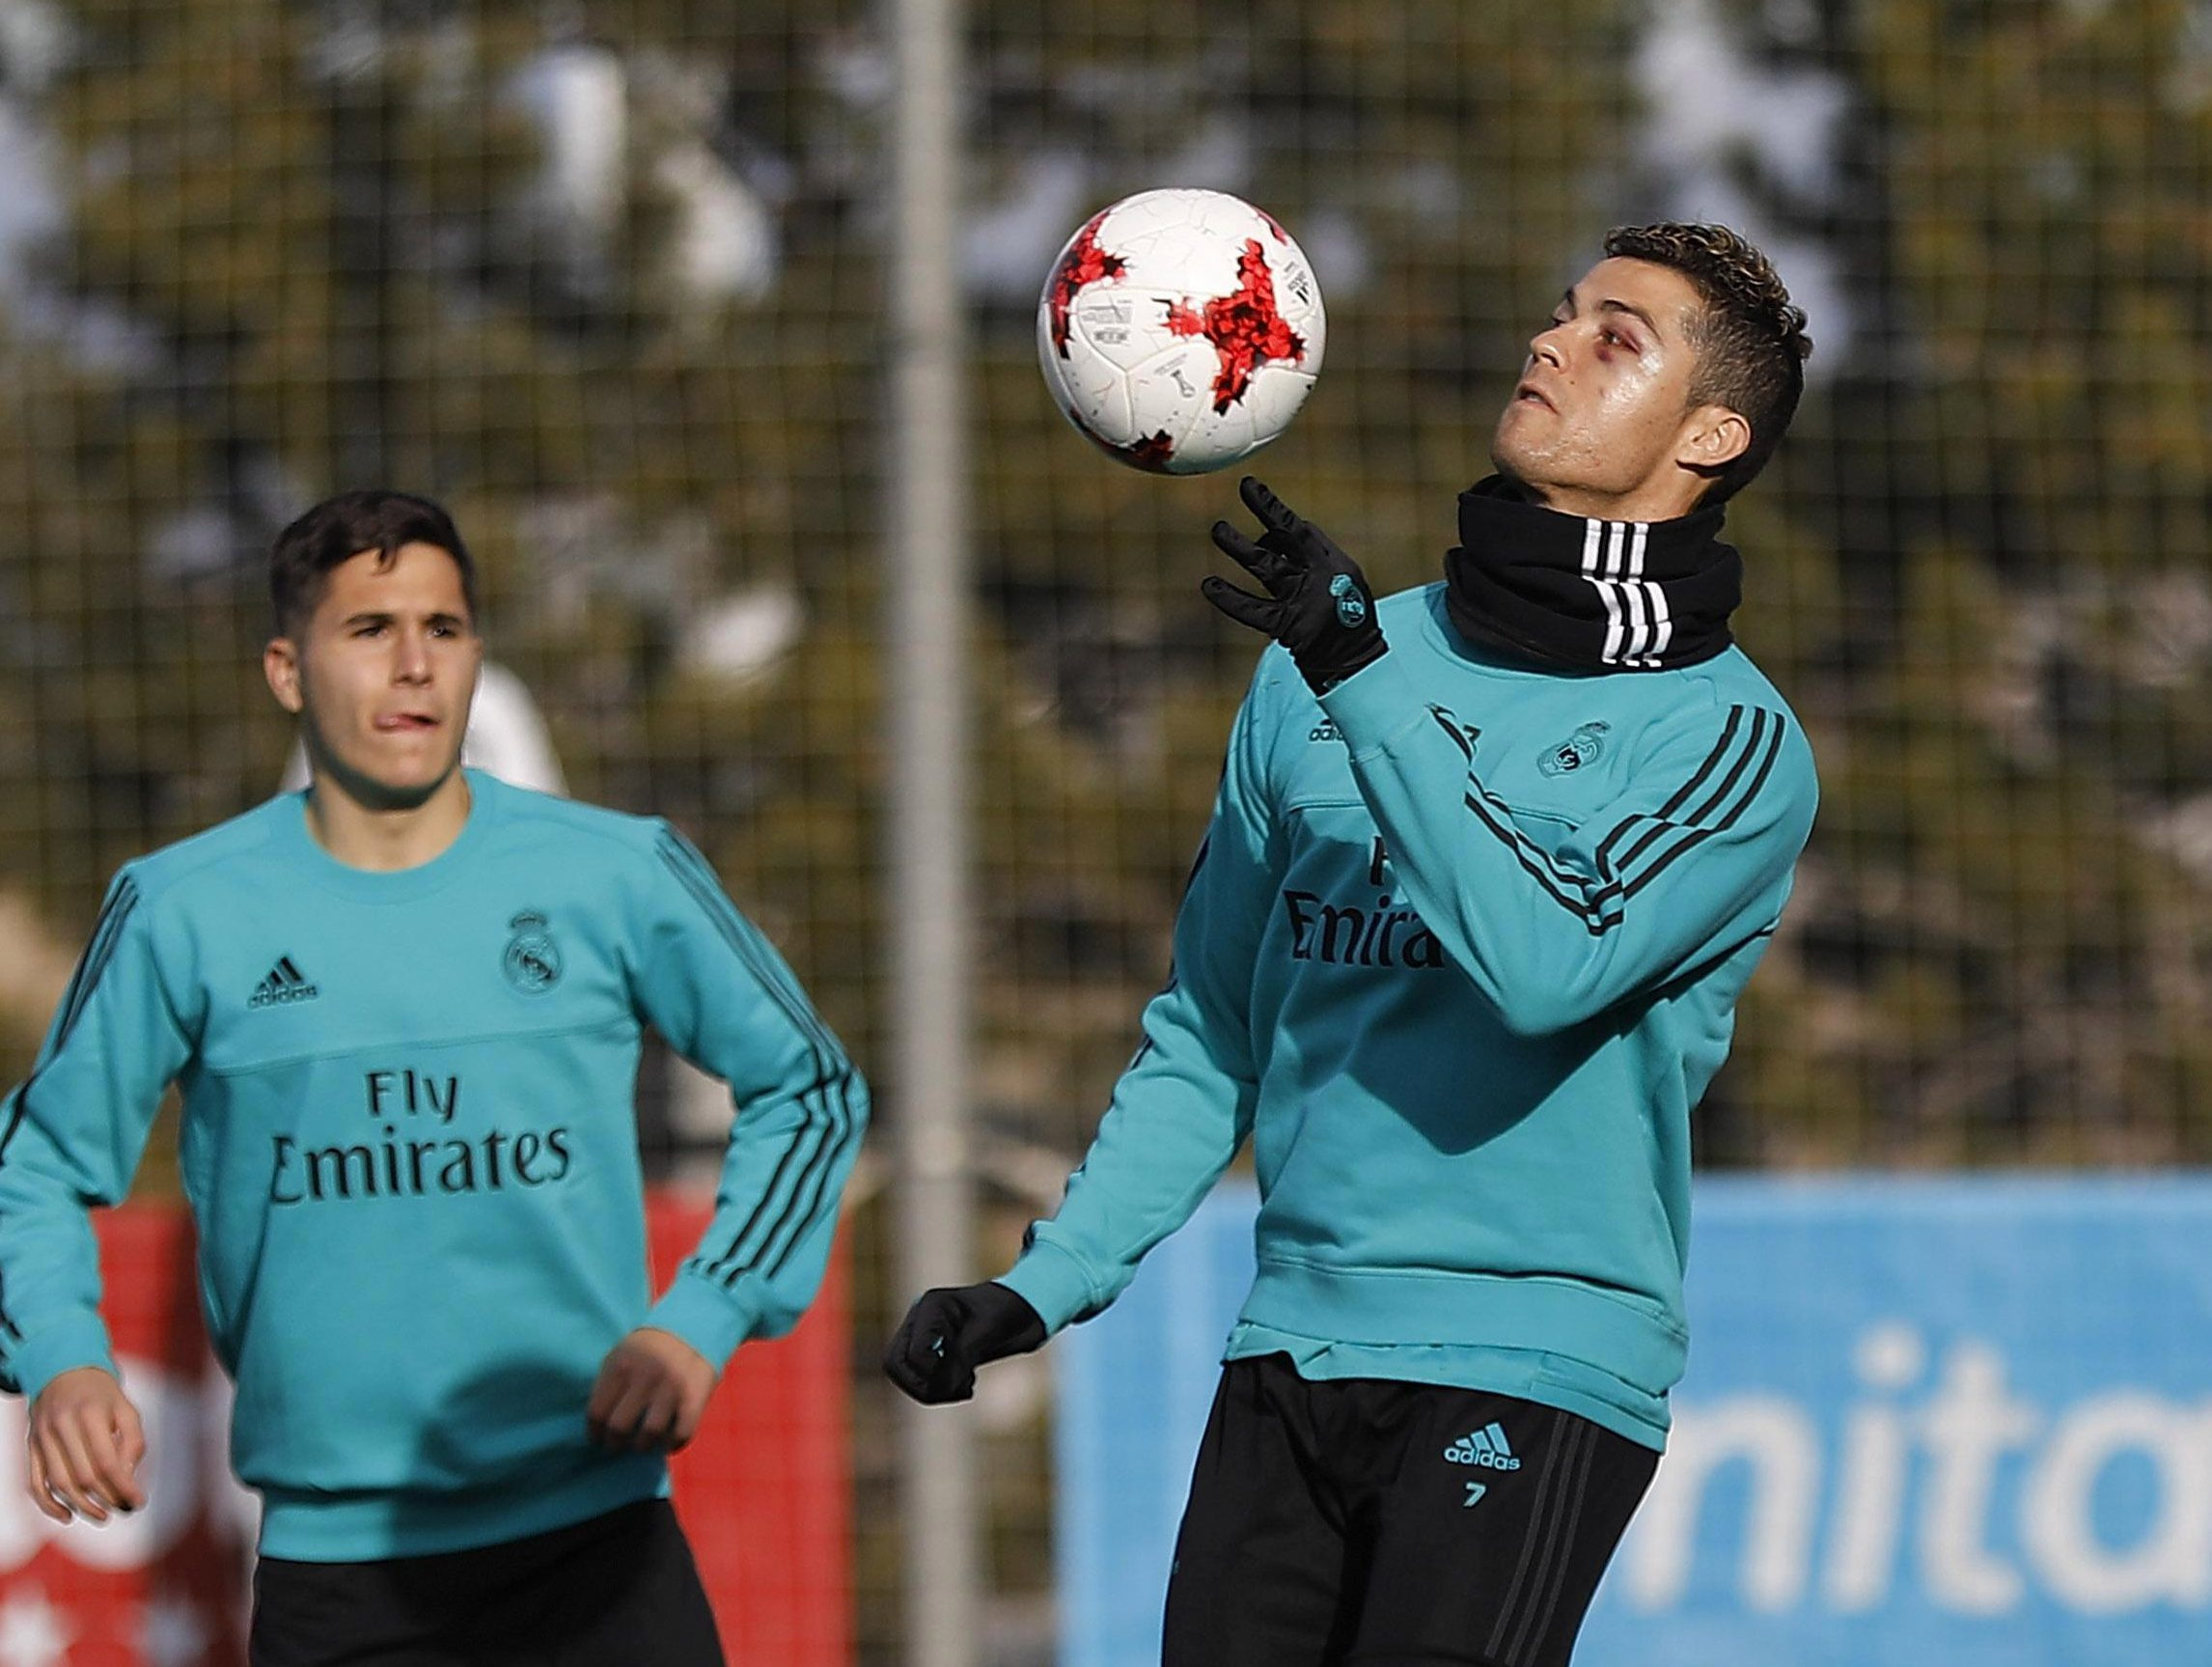 Ronaldo's cut was evident in training